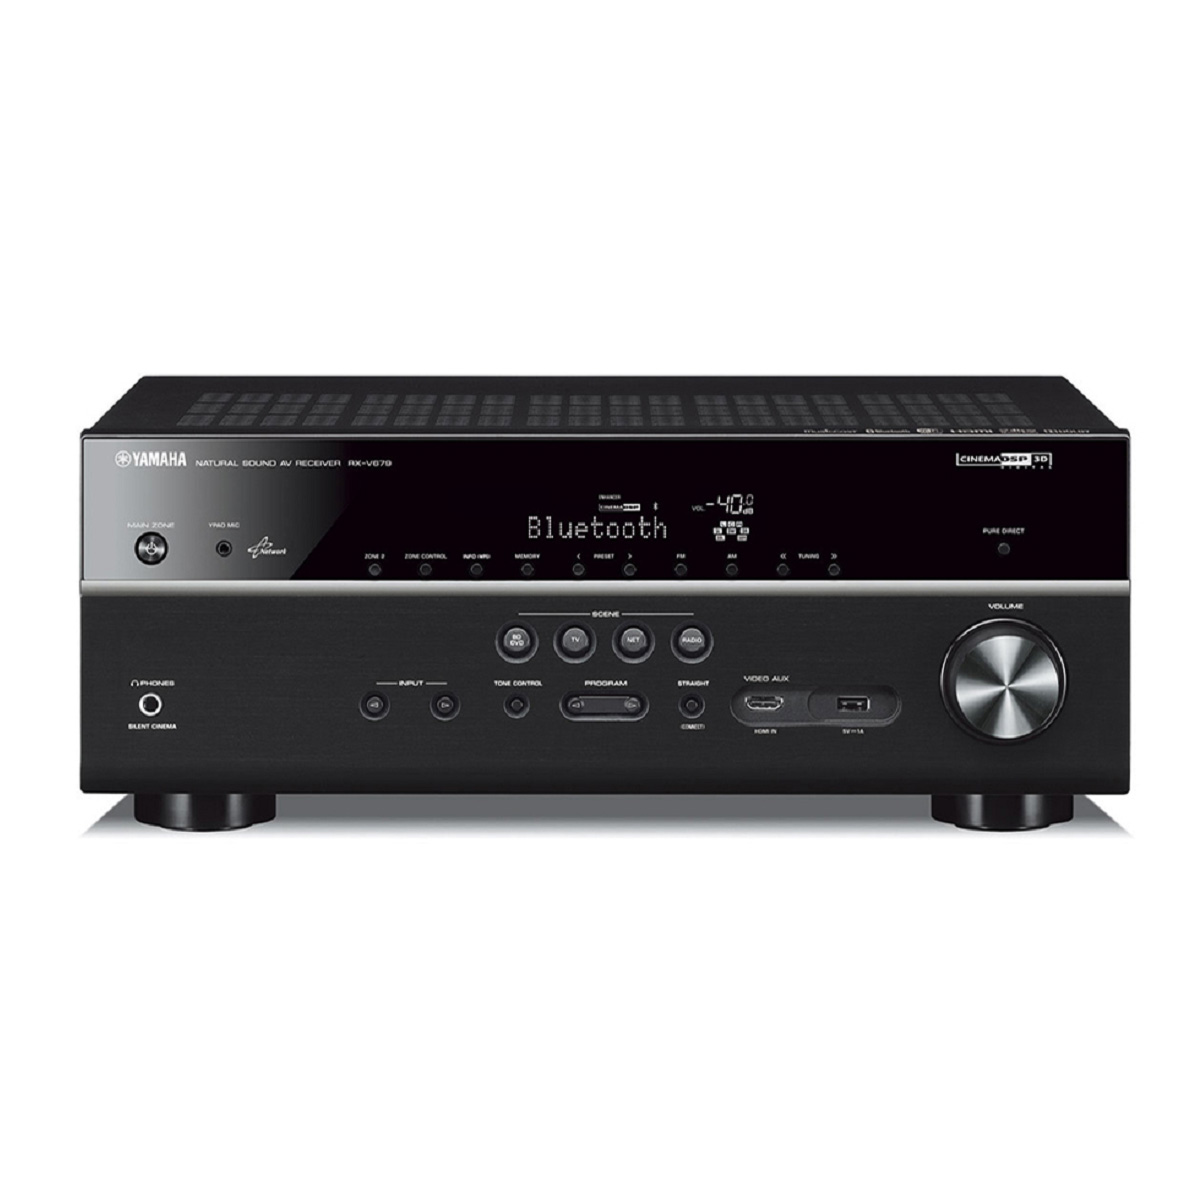 Yamaha Audio Visual RX-V679B